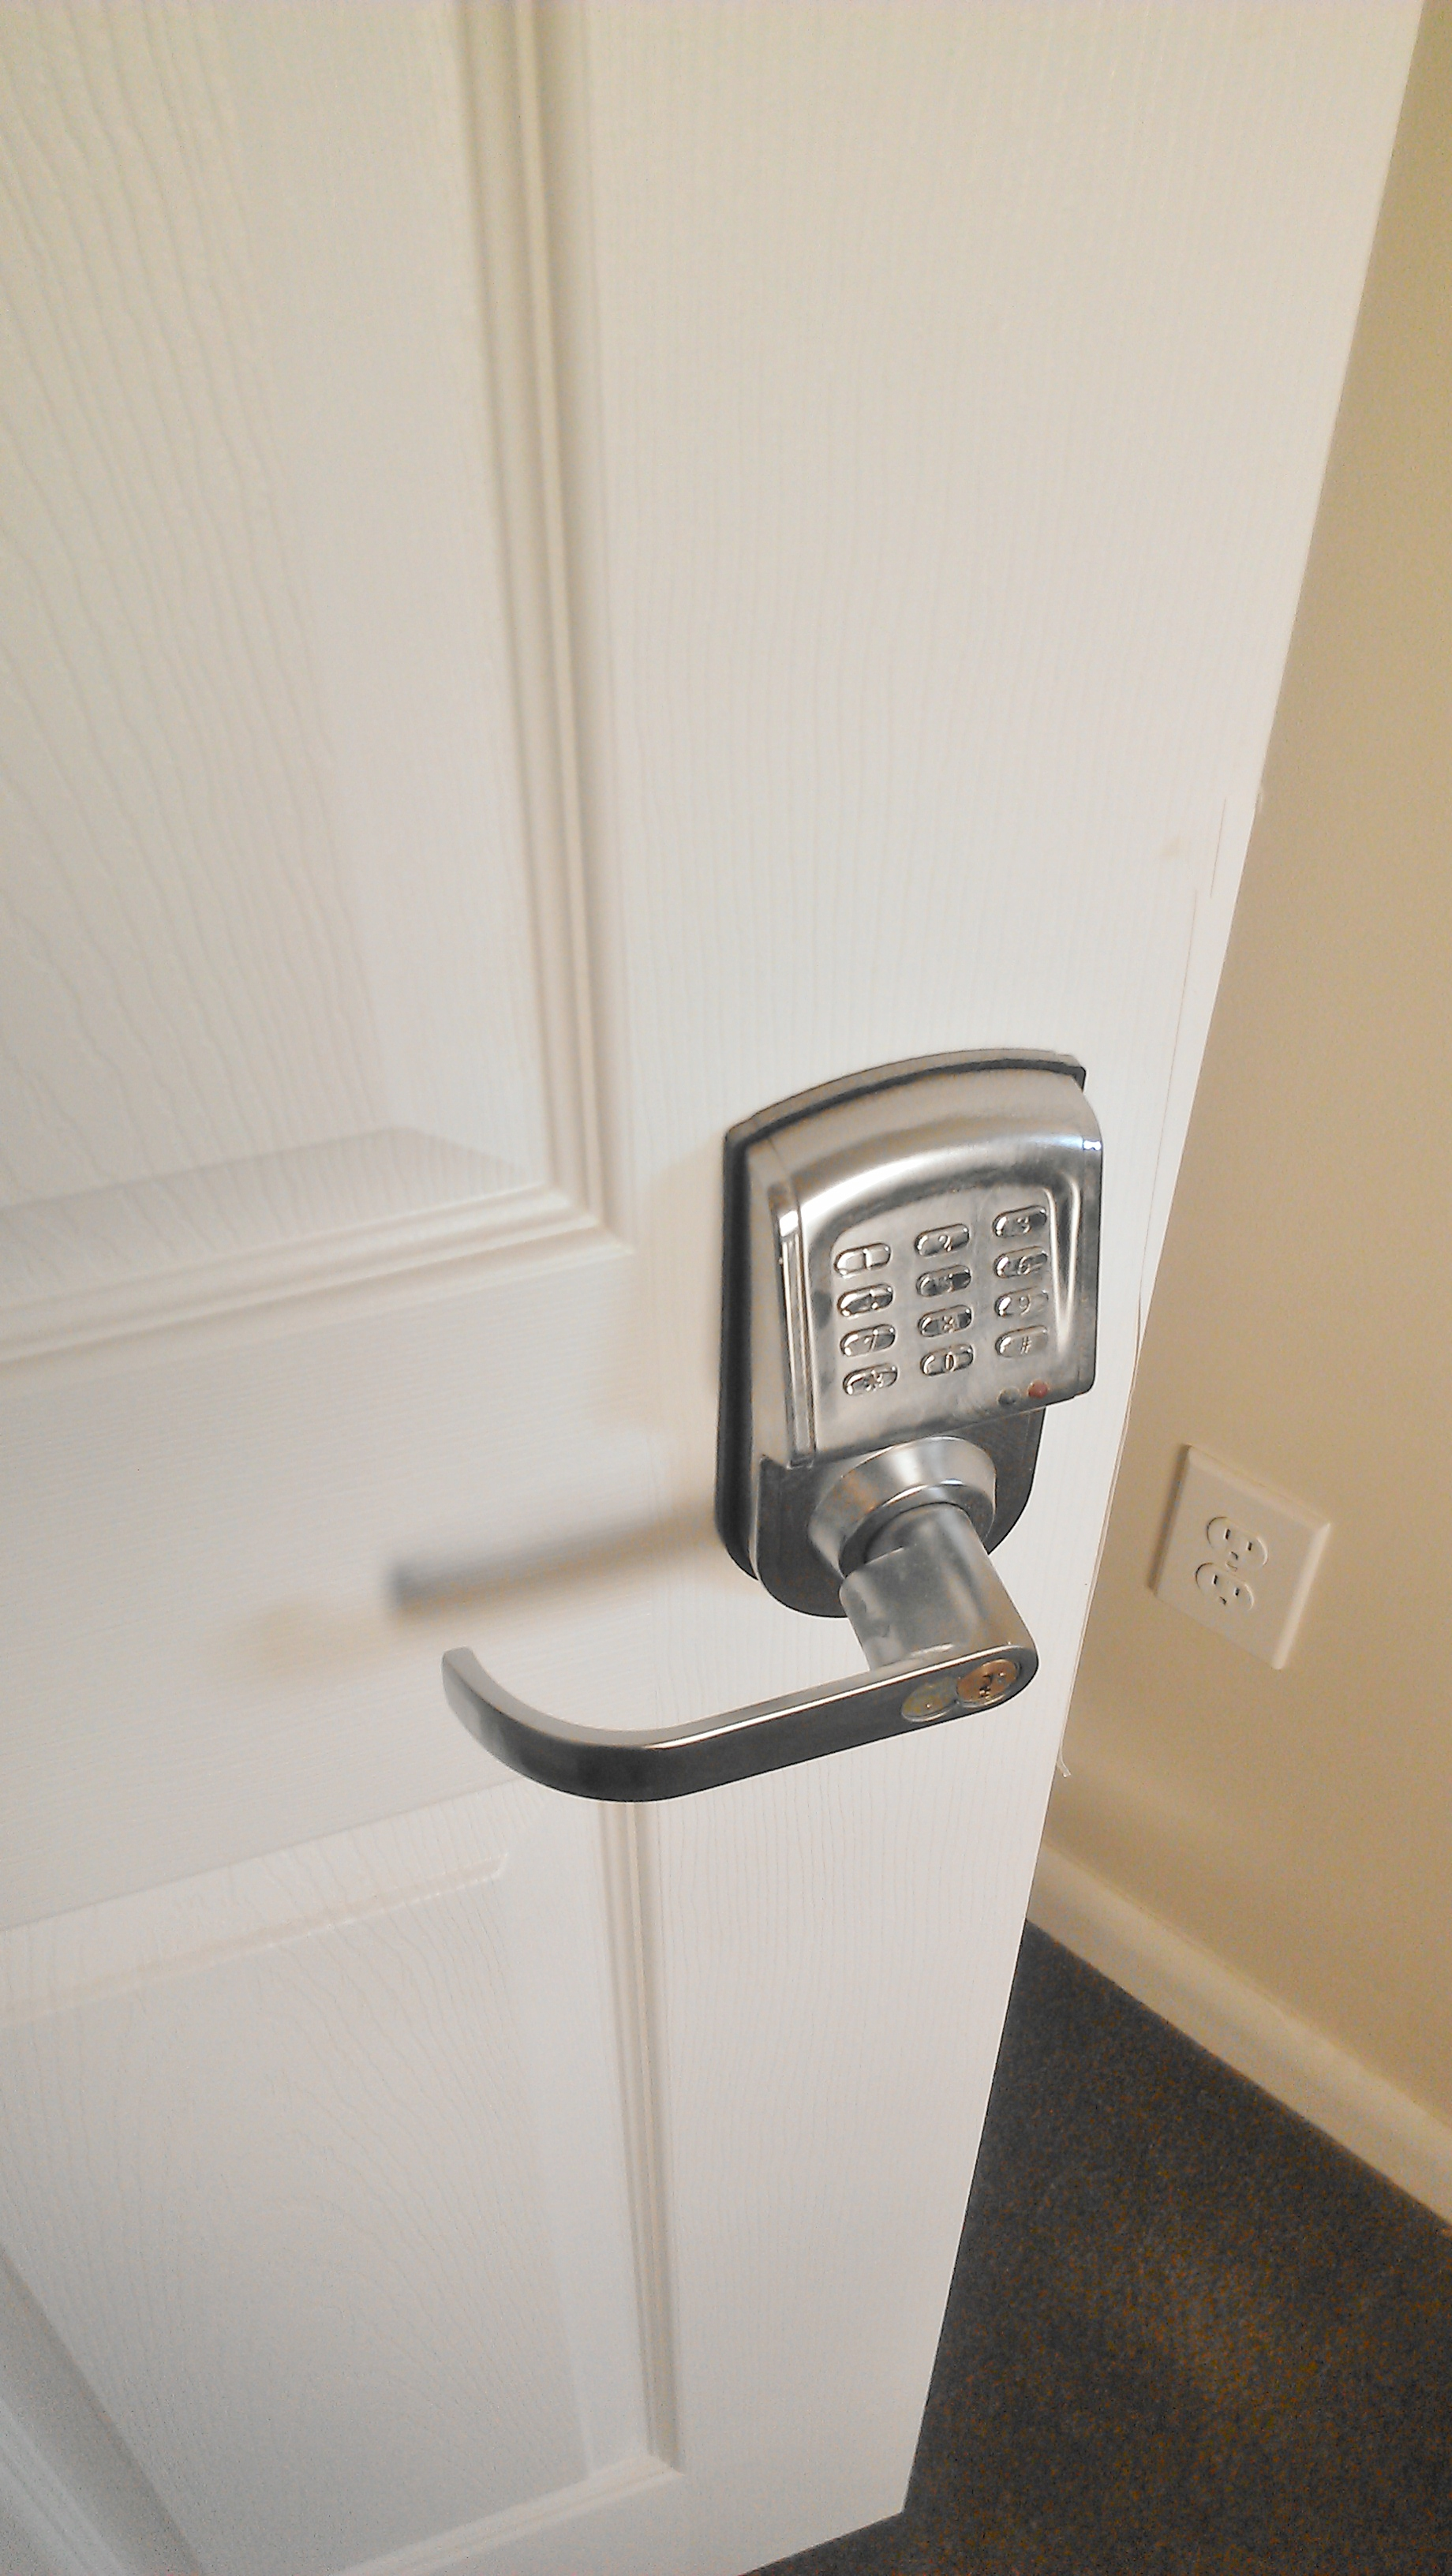 mirrored-sliding-closet-door-lock-photo-12